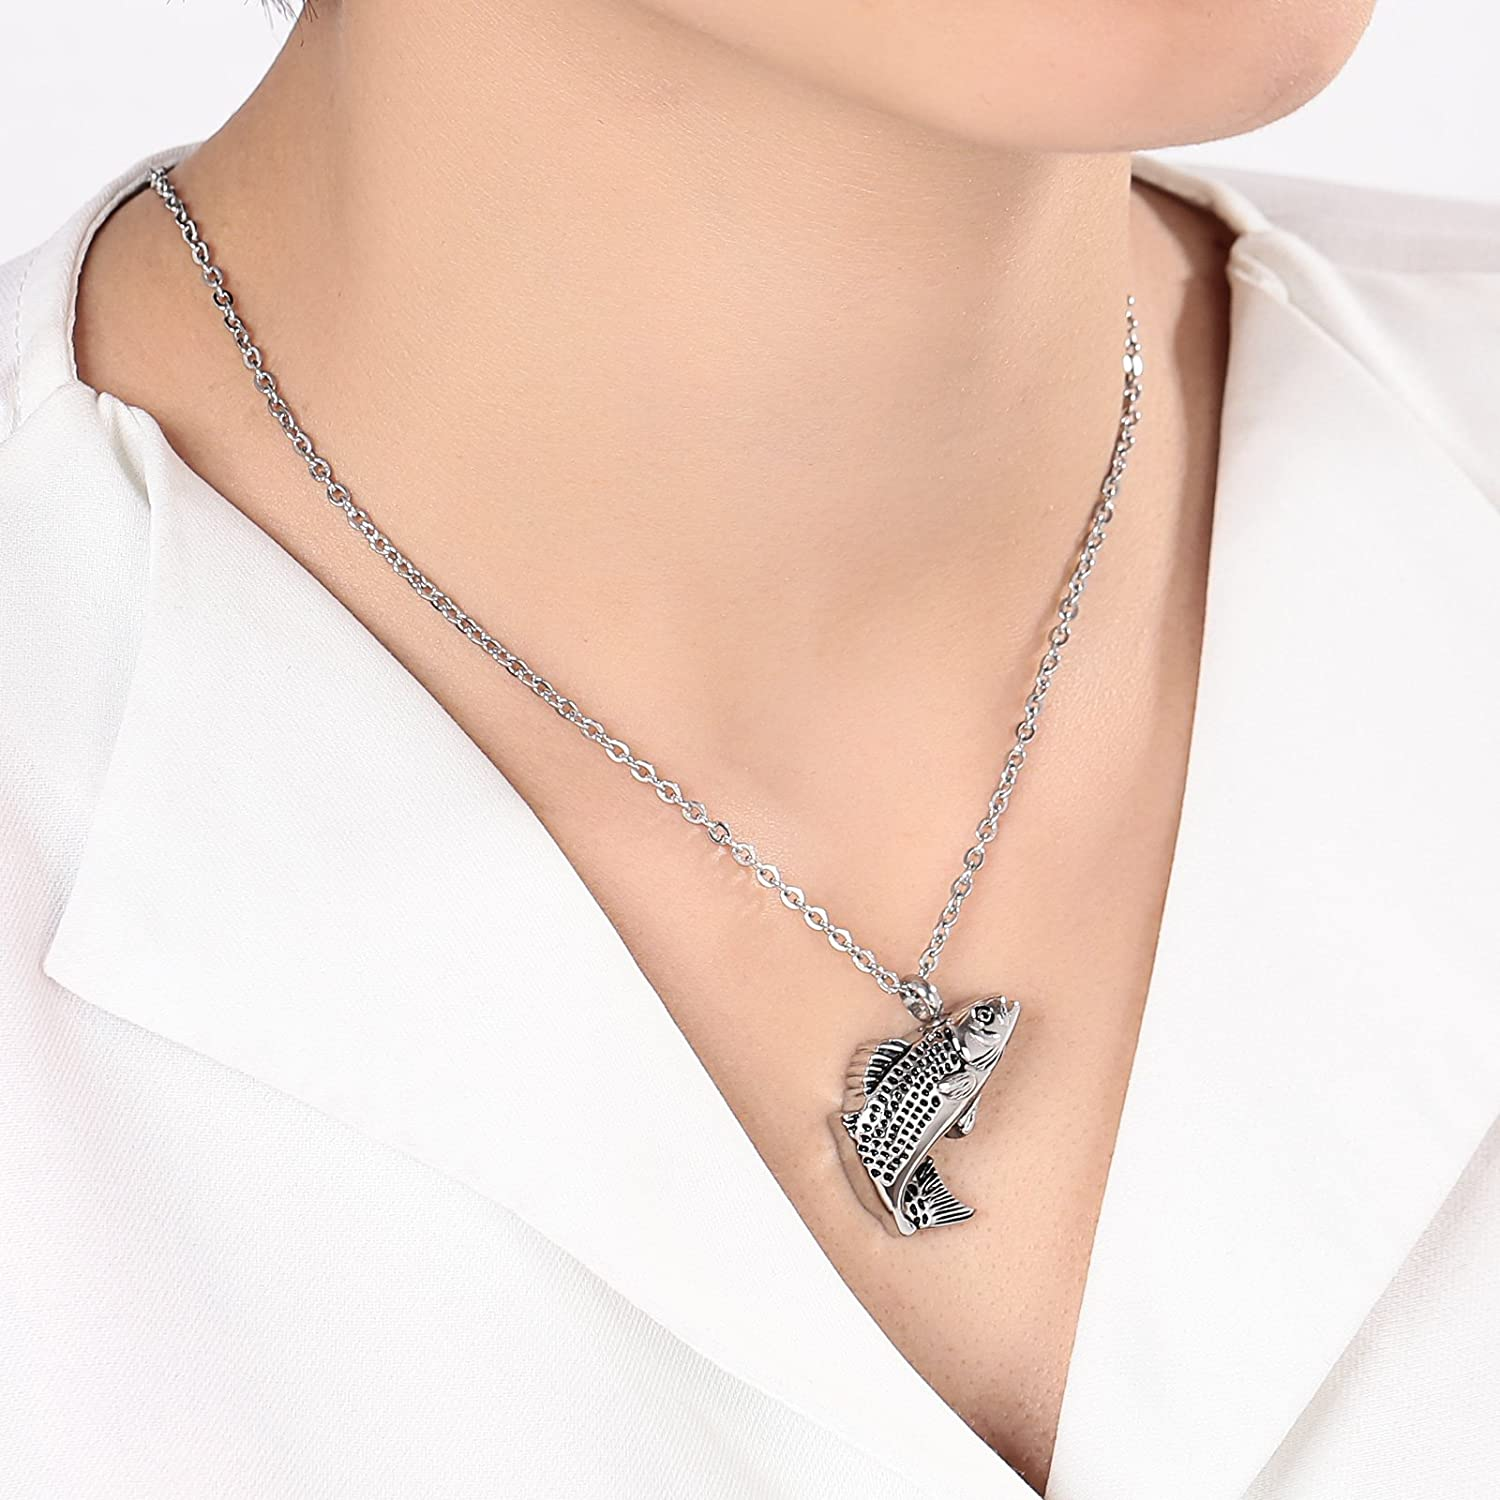 Epinki Jewelry Stainless Steel Silver Fish Urn Necklace for Ashes Cremation Keepsake Necklace